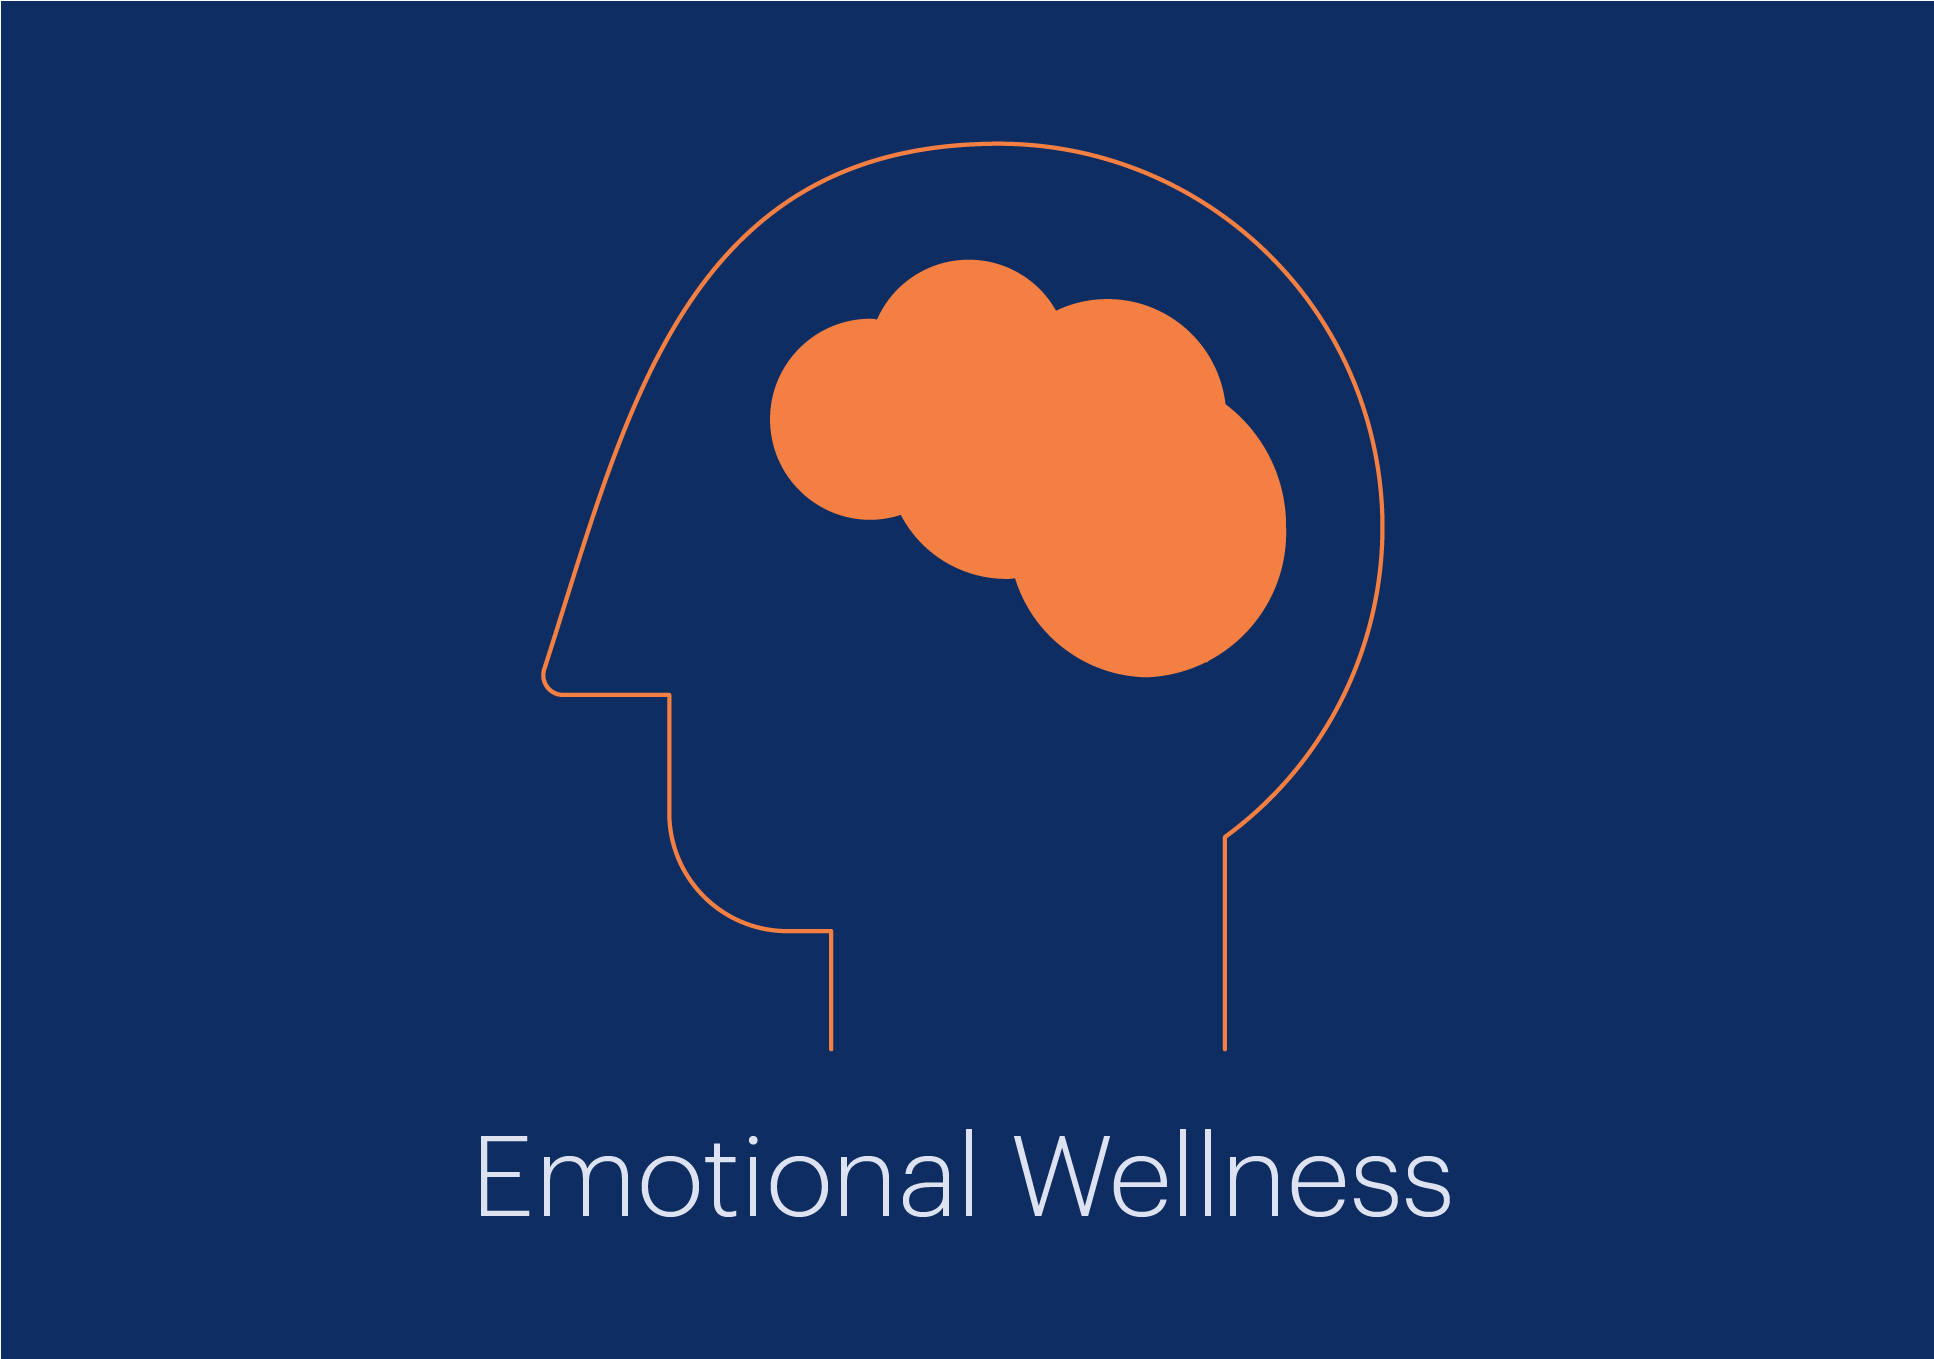 Emotional health is linked to employee productivity. Find tools to help employees manage emotional wellness.